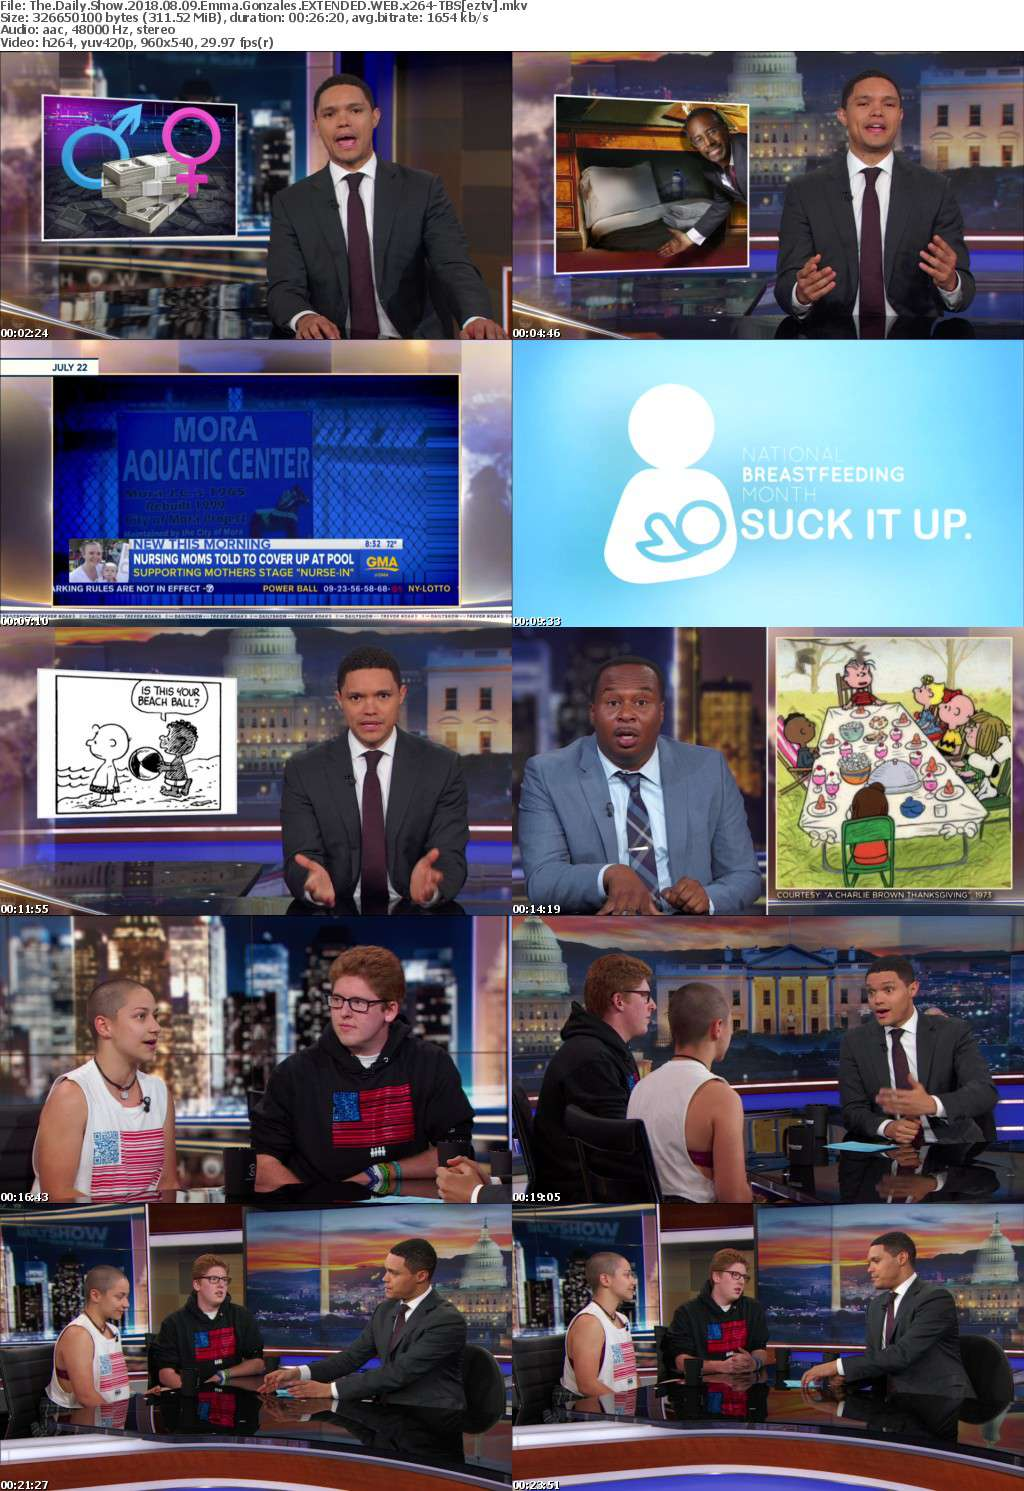 The Daily Show 2018 08 09 Emma Gonzales EXTENDED WEB x264-TBS